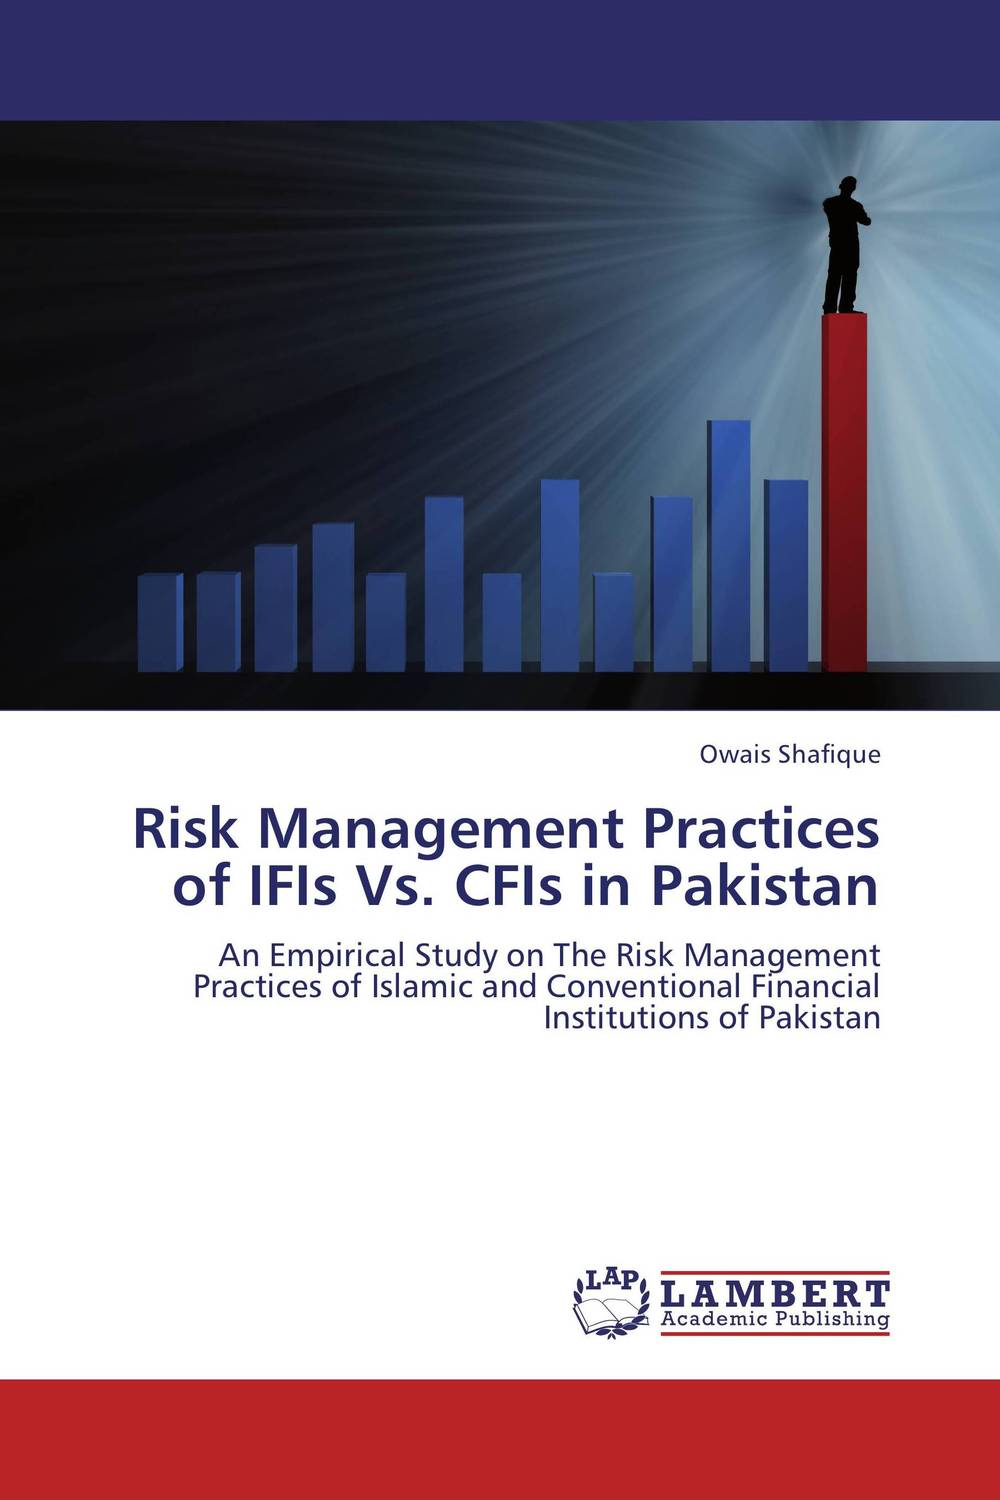 Risk Management Practices of IFIs Vs. CFIs in Pakistan credit risk management practices